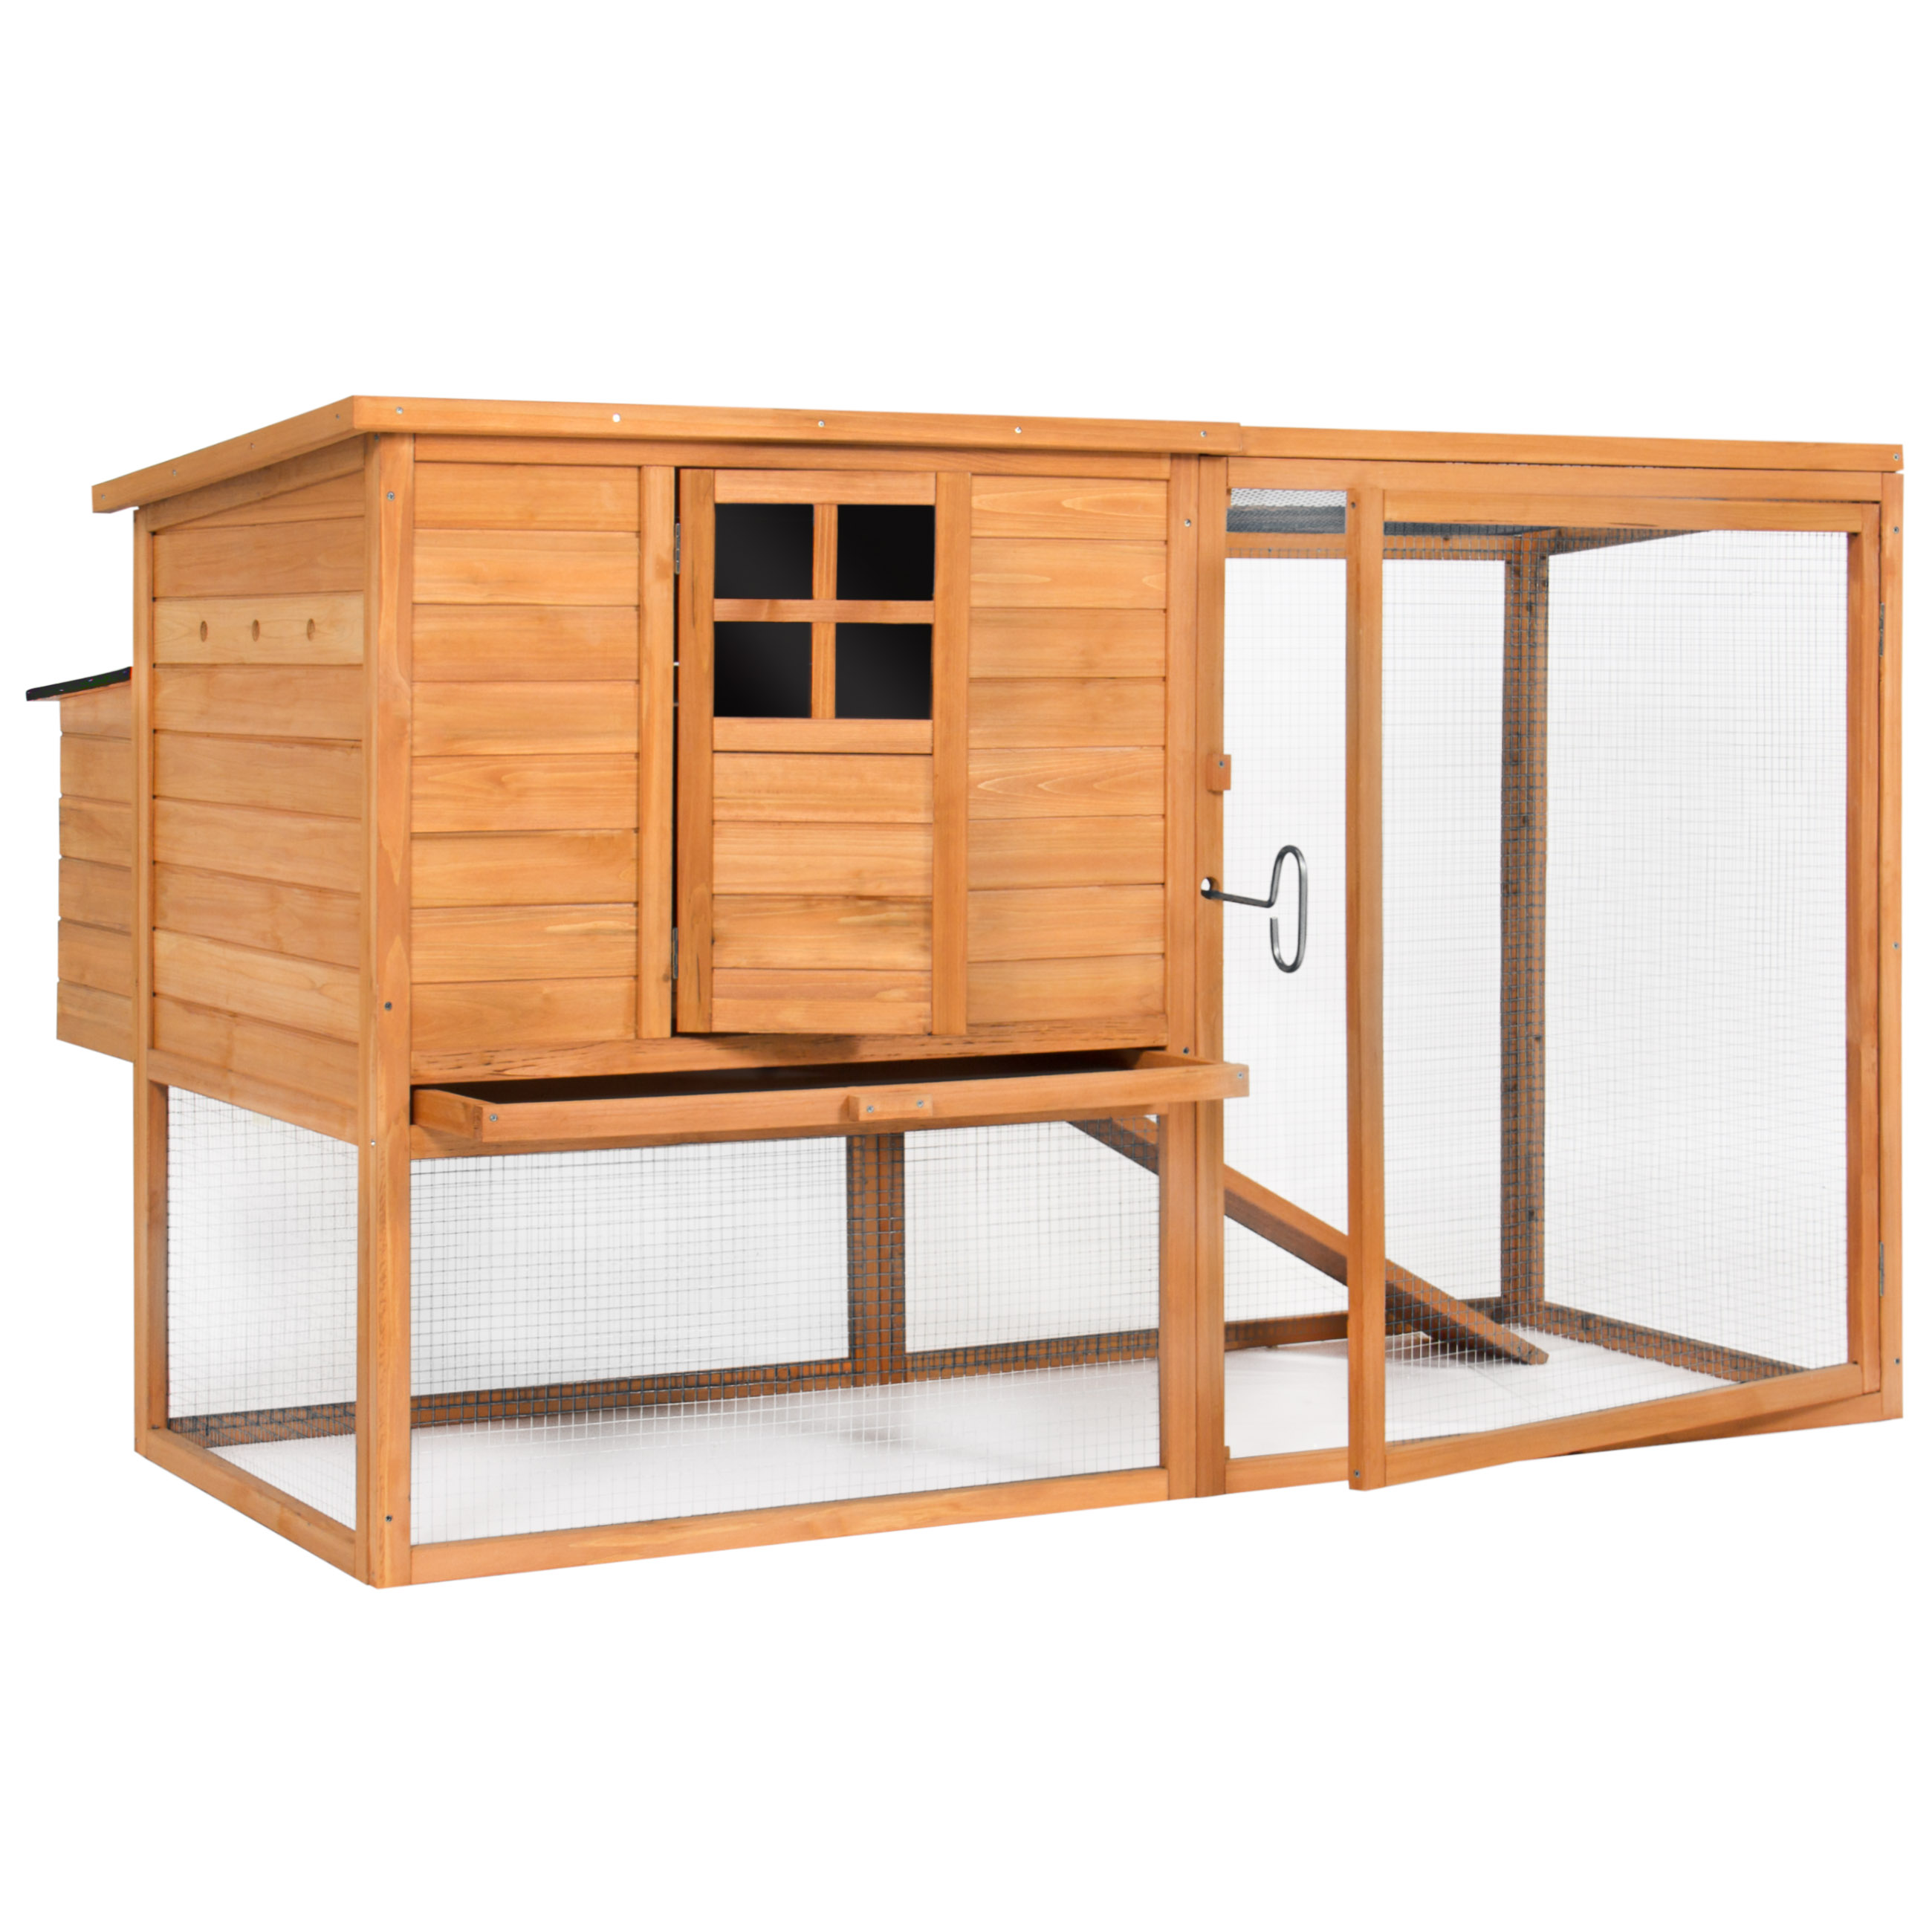 Best Choice Products 66in Outdoor Wooden Chicken Coop w/ Nesting Hen House Poultry Cage - Brown